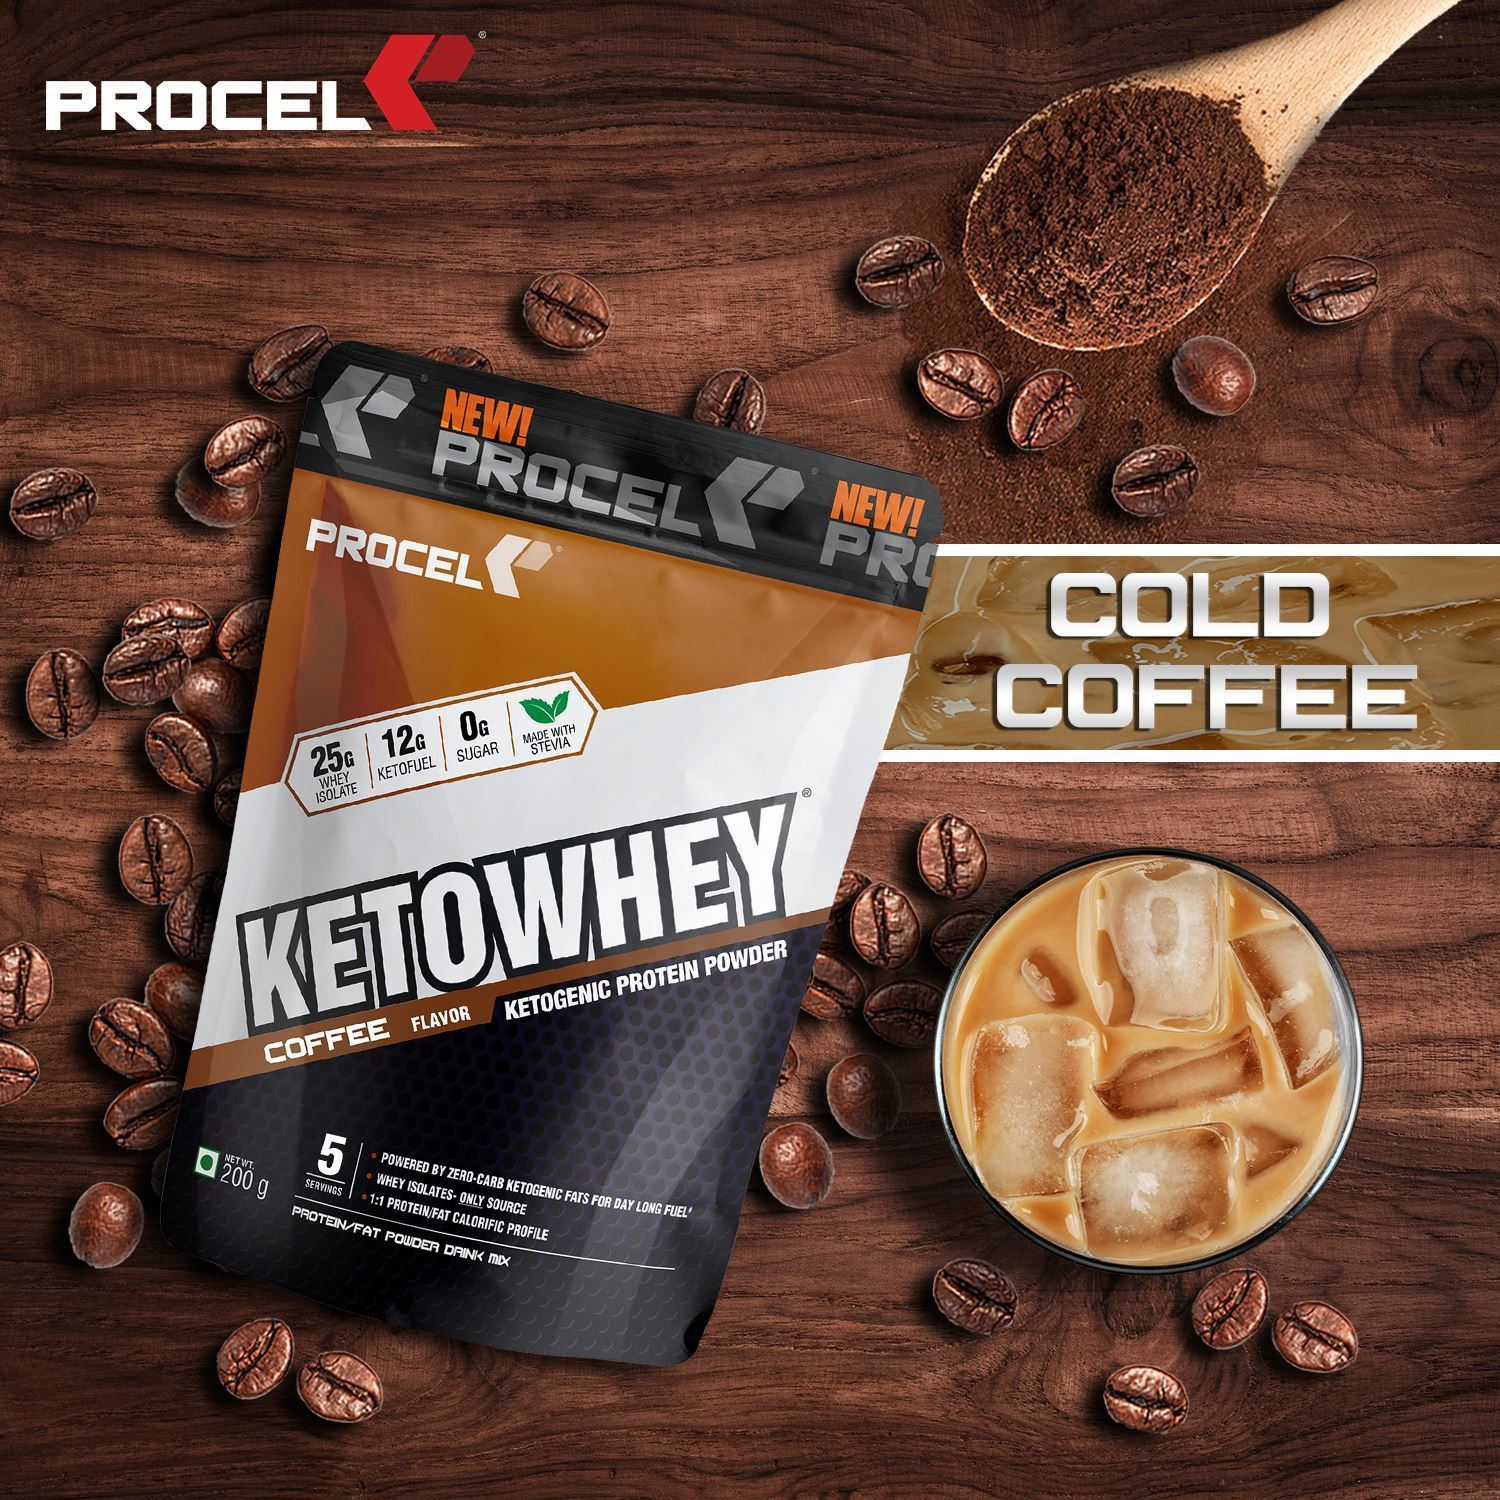 Picture of PROCEL KETOWHEY® Ketogenic Protein Powder with Ketofuel 200g Trial Pack (Coffee) (Short Shelf Life)